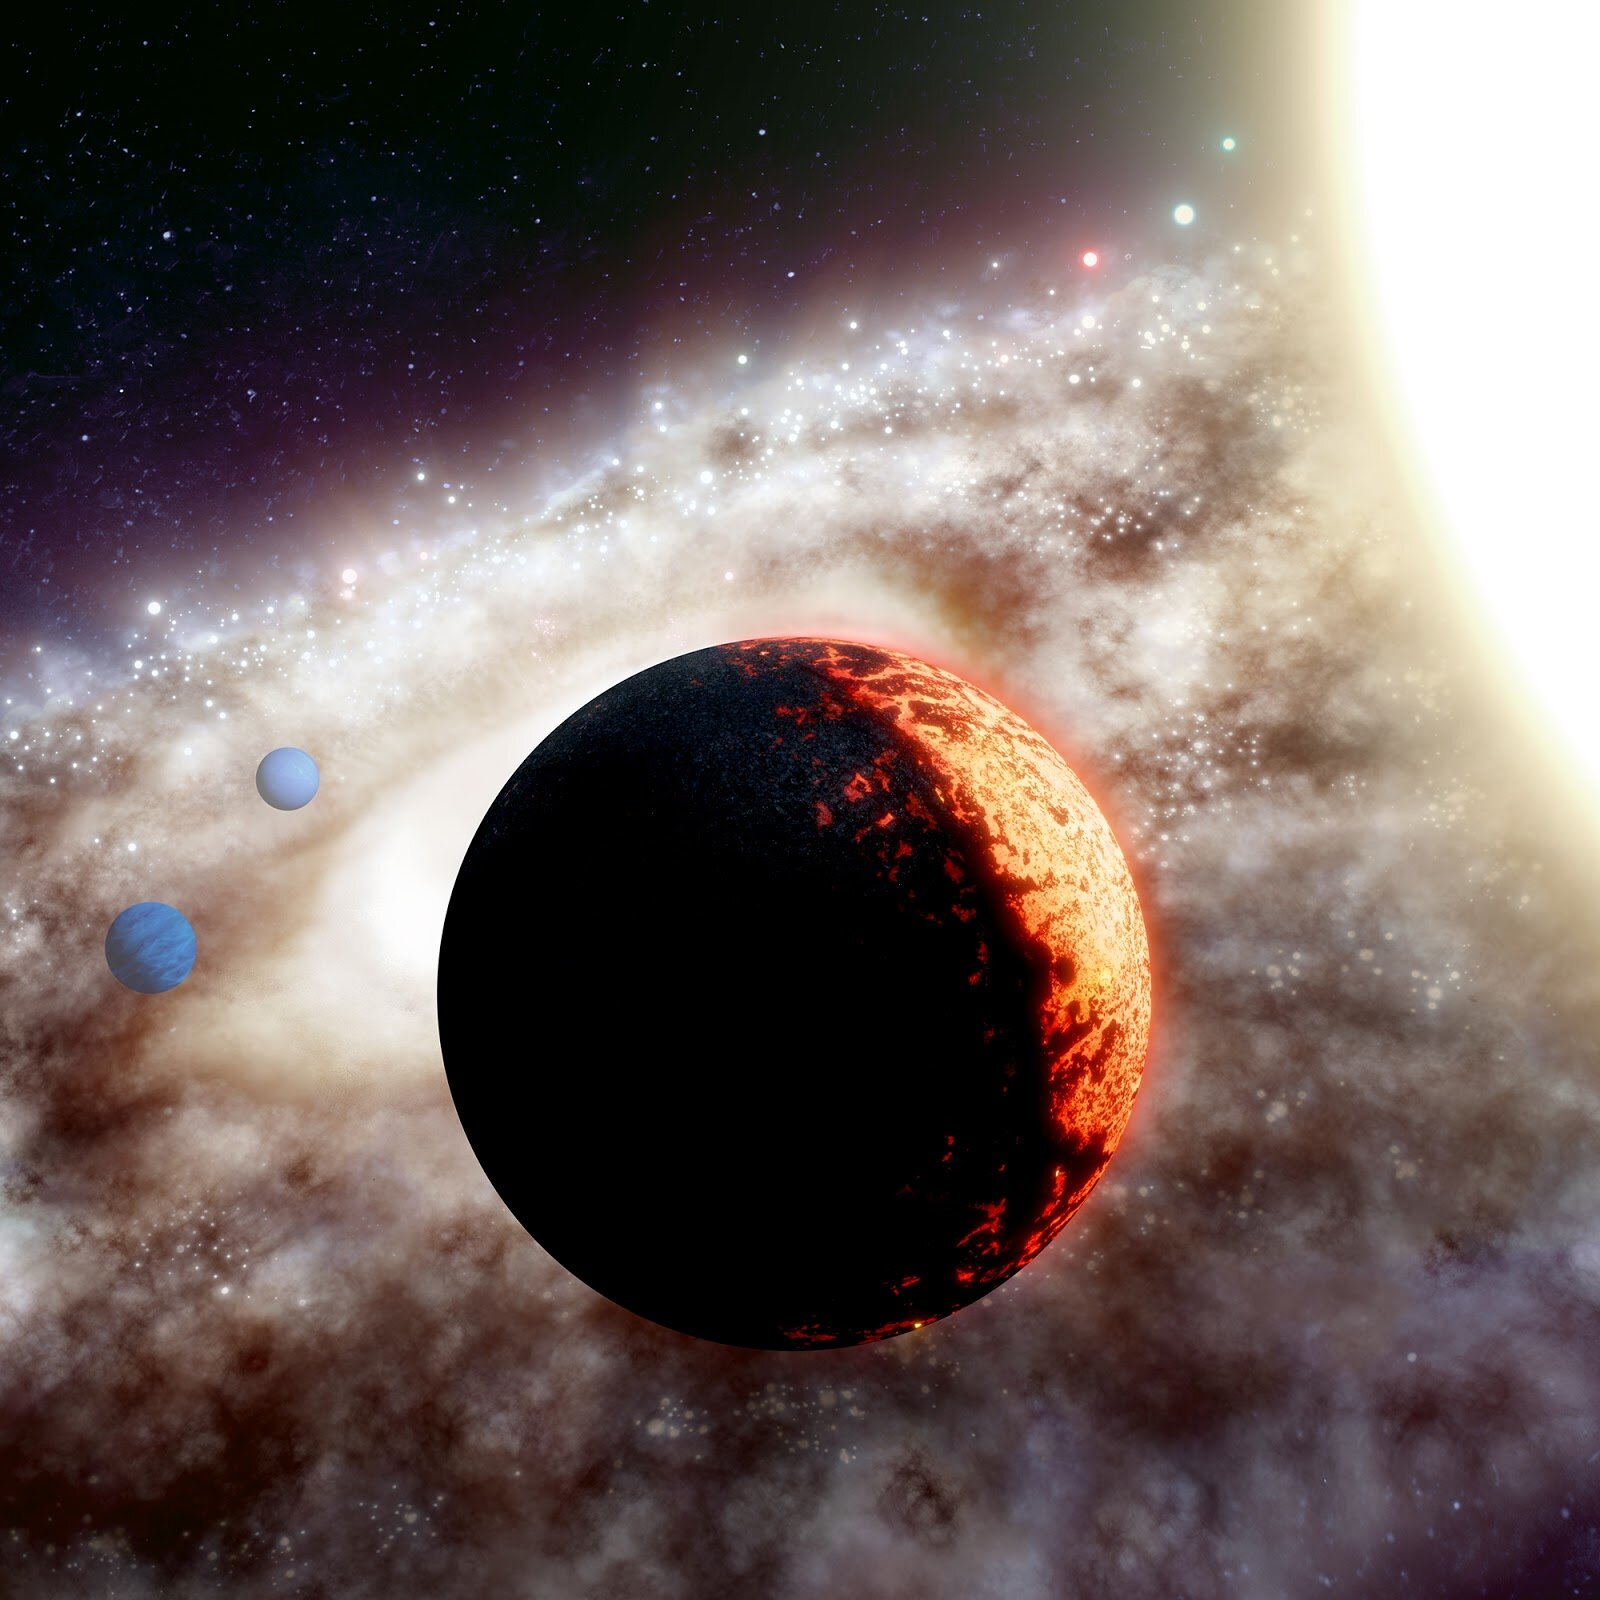 'Super Earth' discovered near one of our galaxy's oldest stars